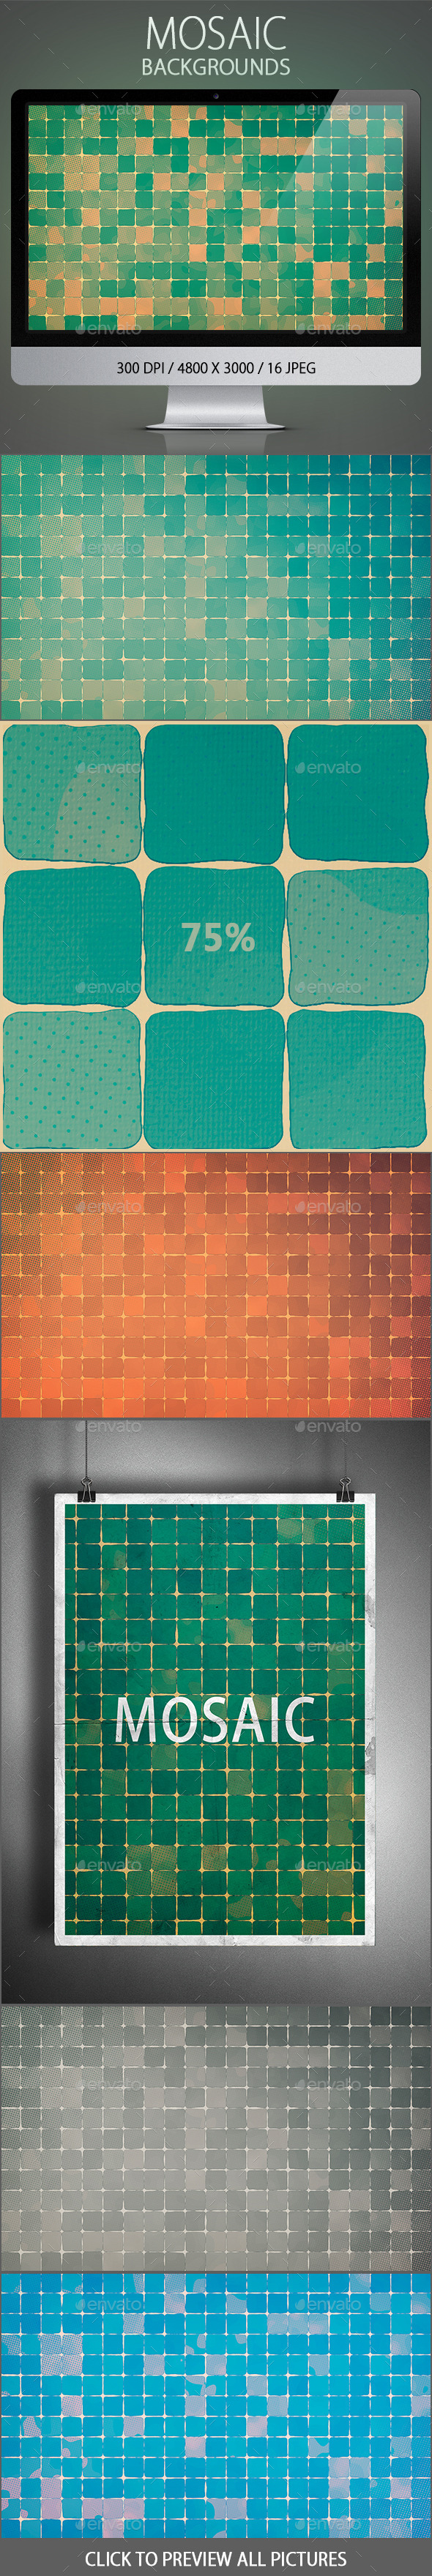 GraphicRiver 16 Mosaic Backgrounds 10802464